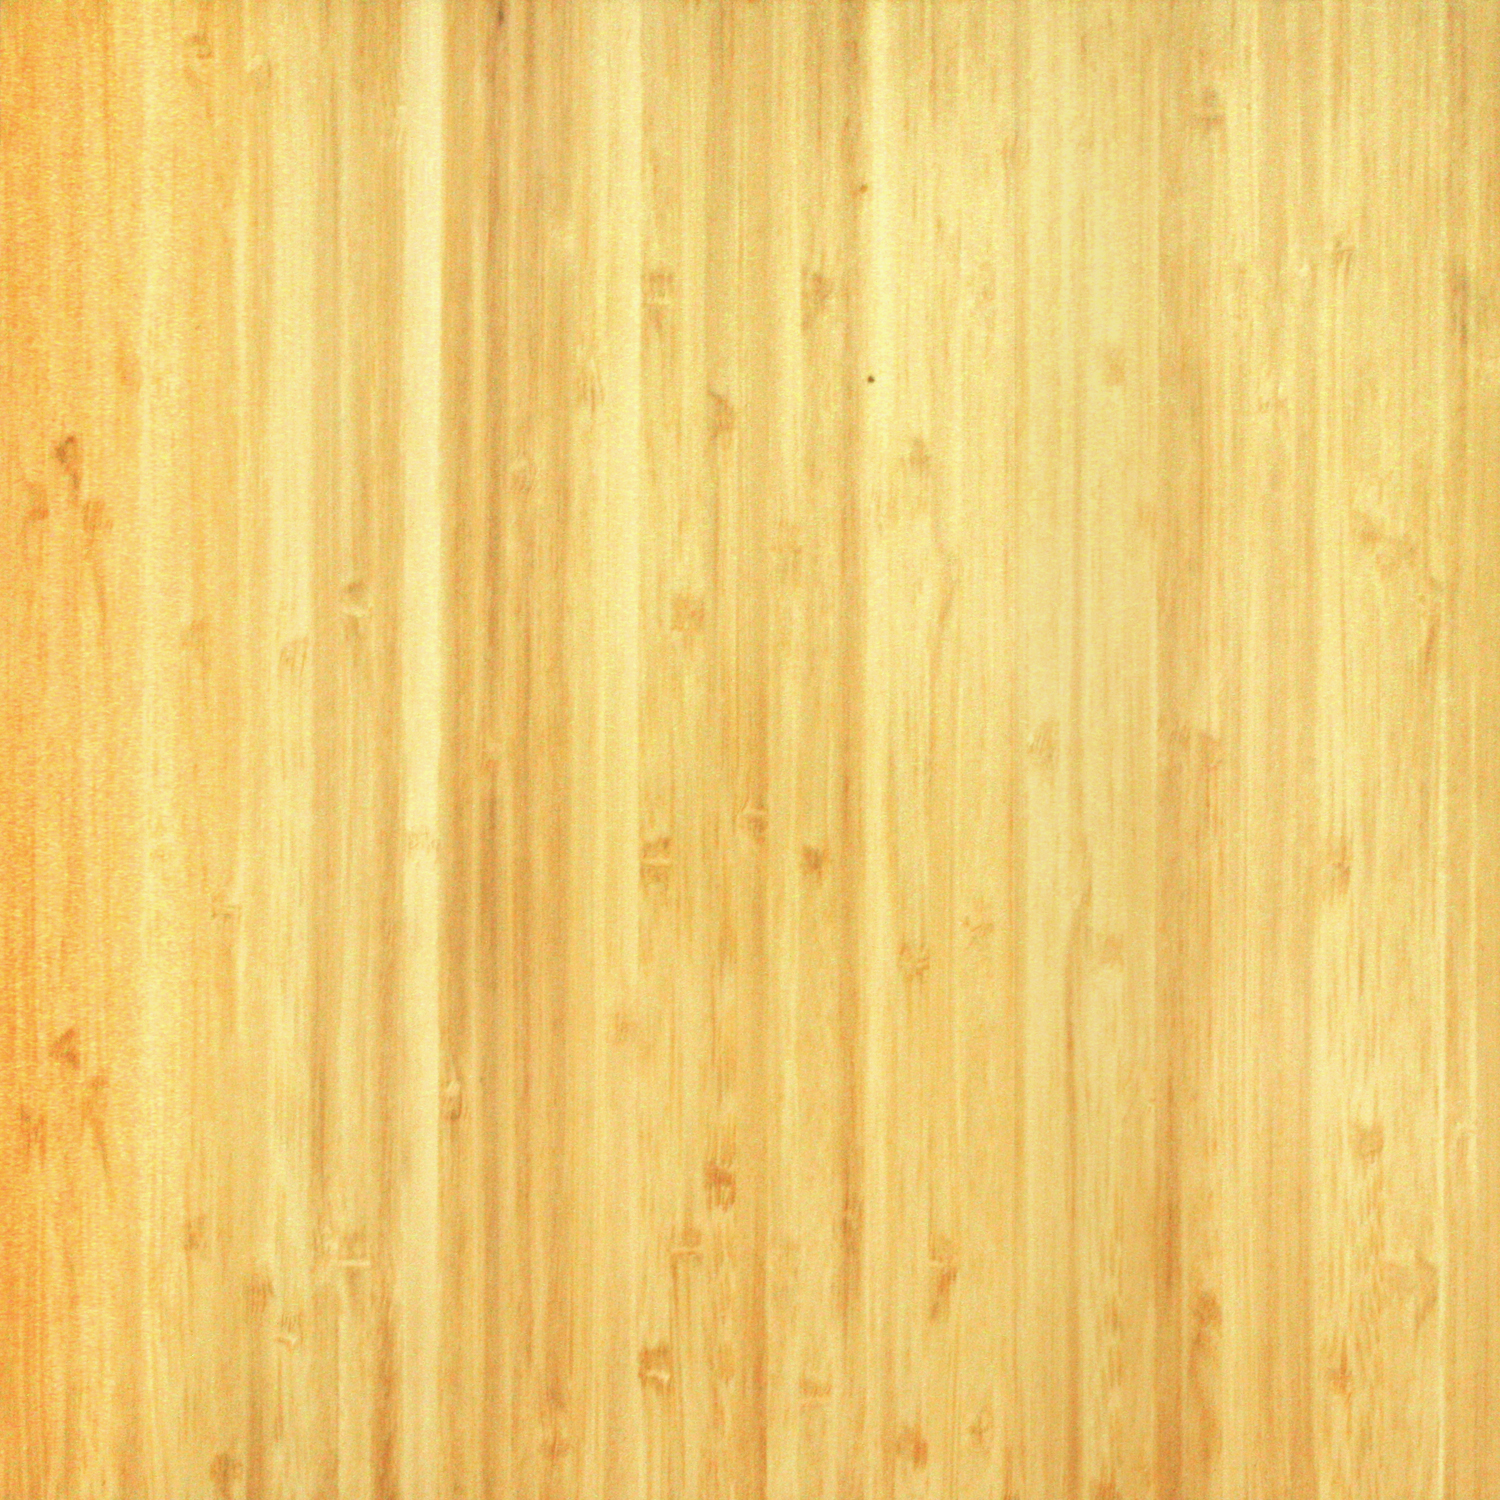 Fence Panel Bamboo Fence Panel Suppliersfence Panel